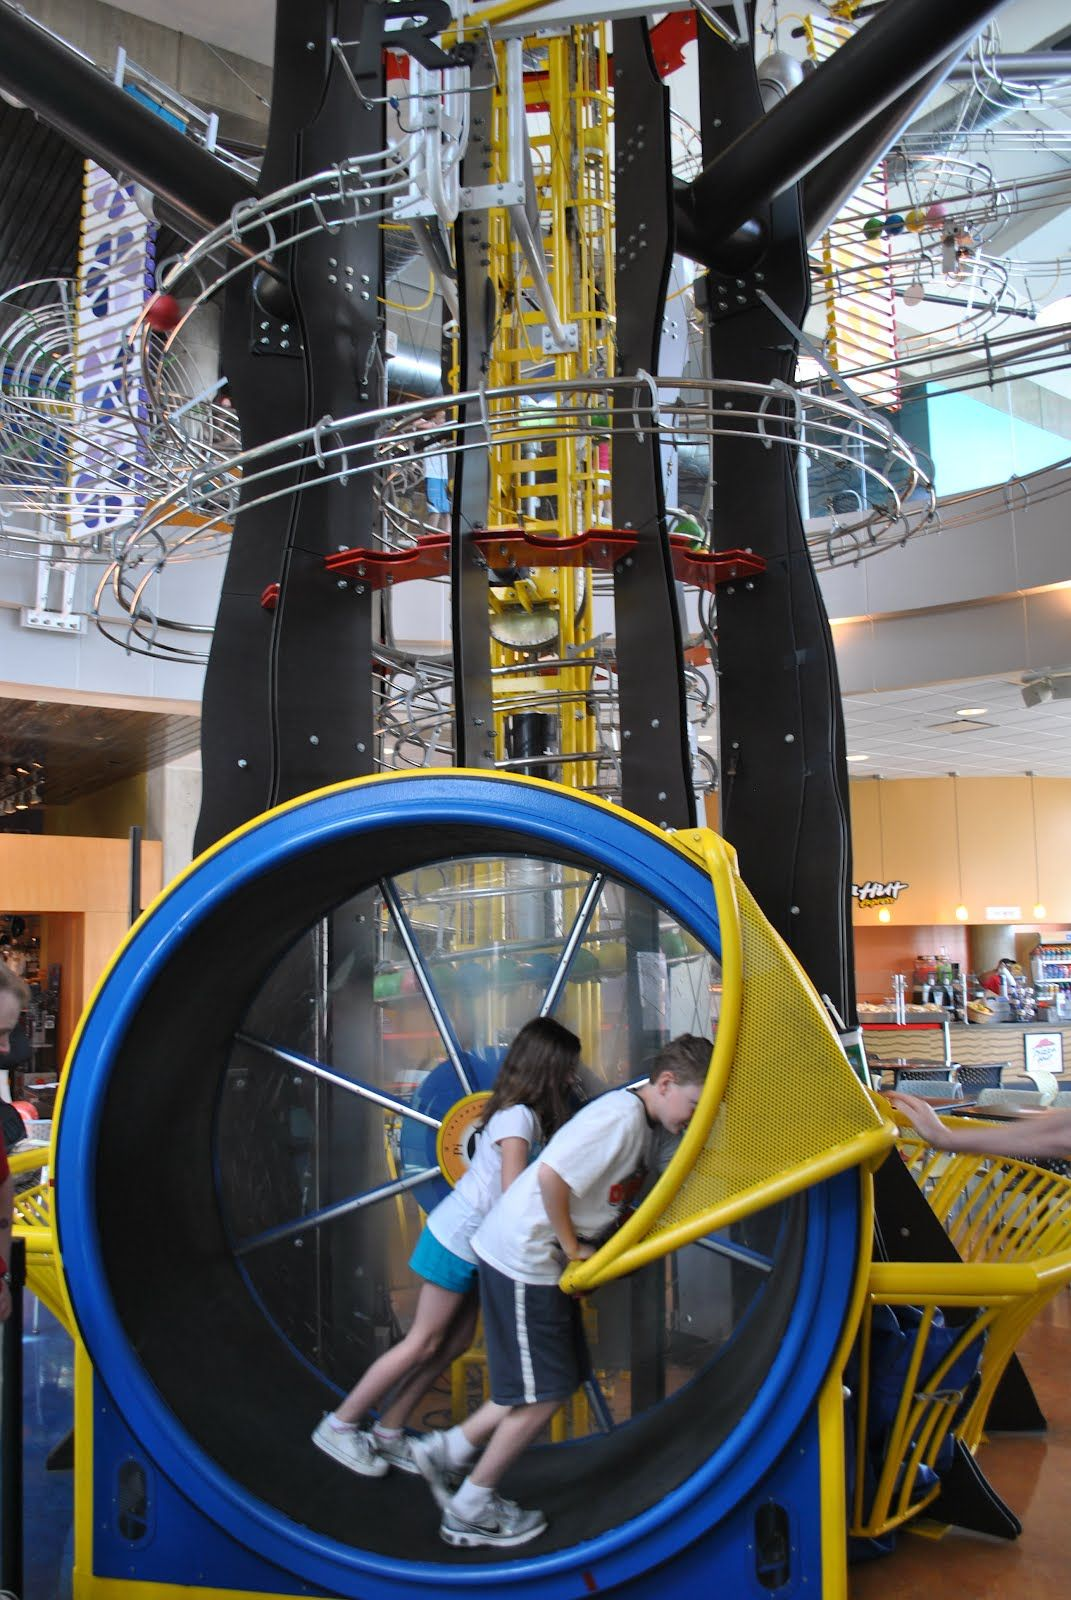 The Science Center is another great stop  within Forest Park. This Free mostly museum has many interactive exhibits. It also features many paid exhibits if you choose. FYI the IMAX is not Free, but you knew that.